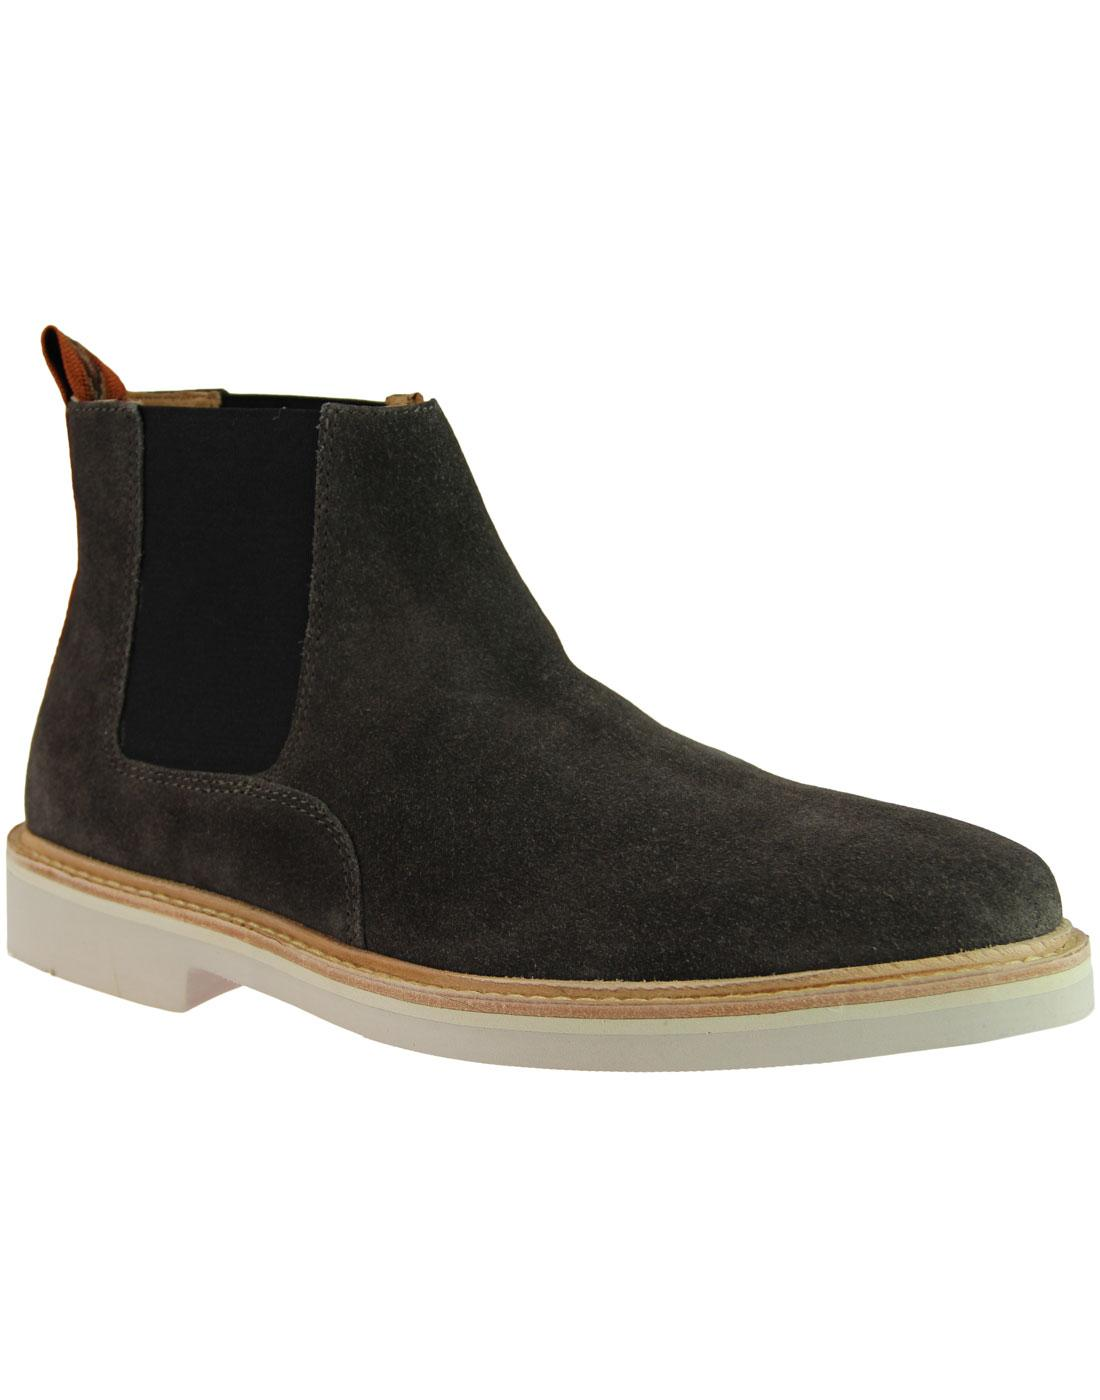 Gallant HUDSON 366 Mod Suede Chelsea Boots GREY